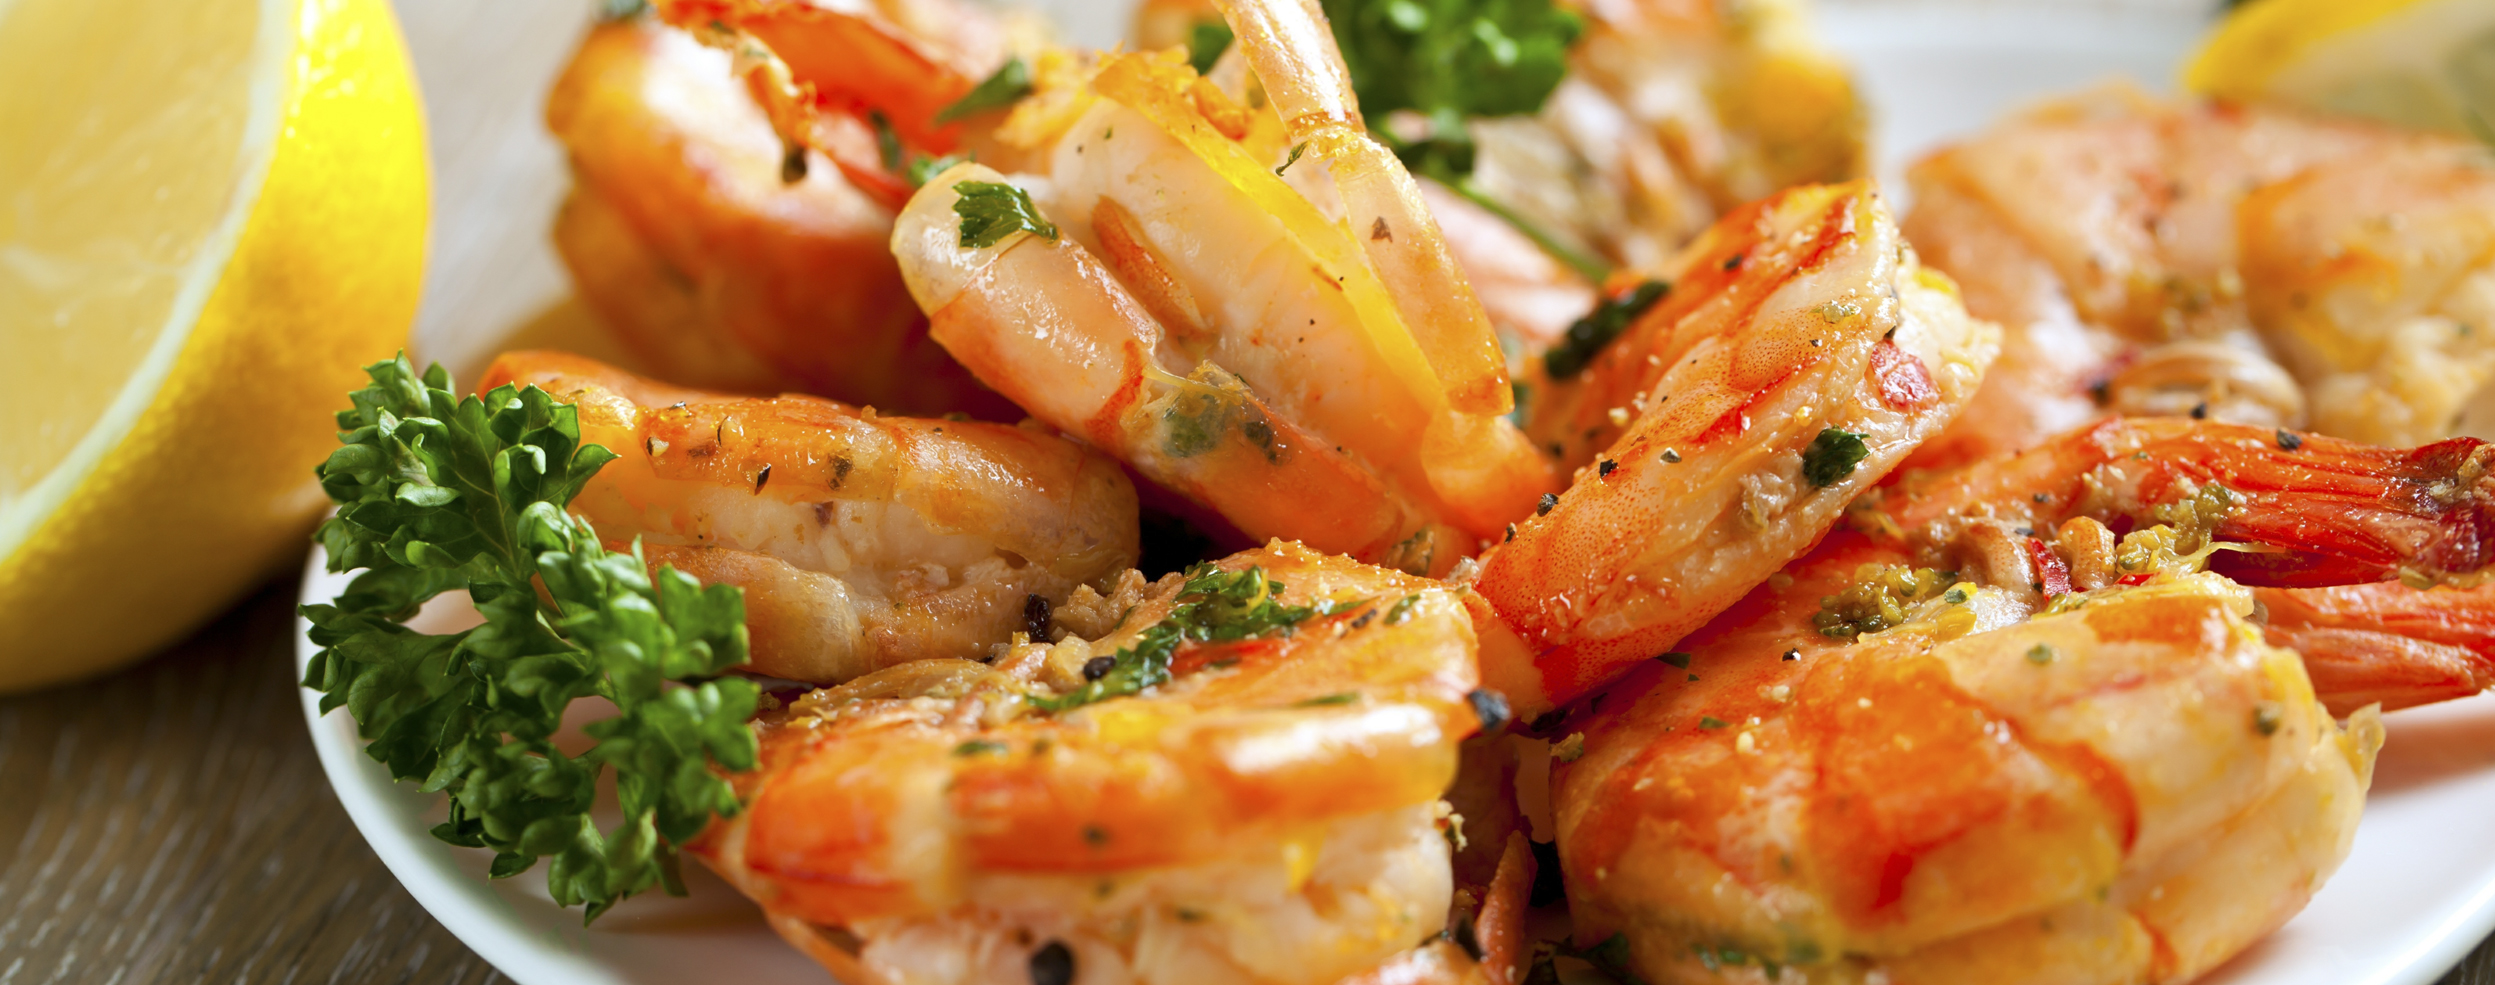 Grilled%20Prawns%20Spiced%20with%20TABASCO%20Sauce%20Banner.jpg